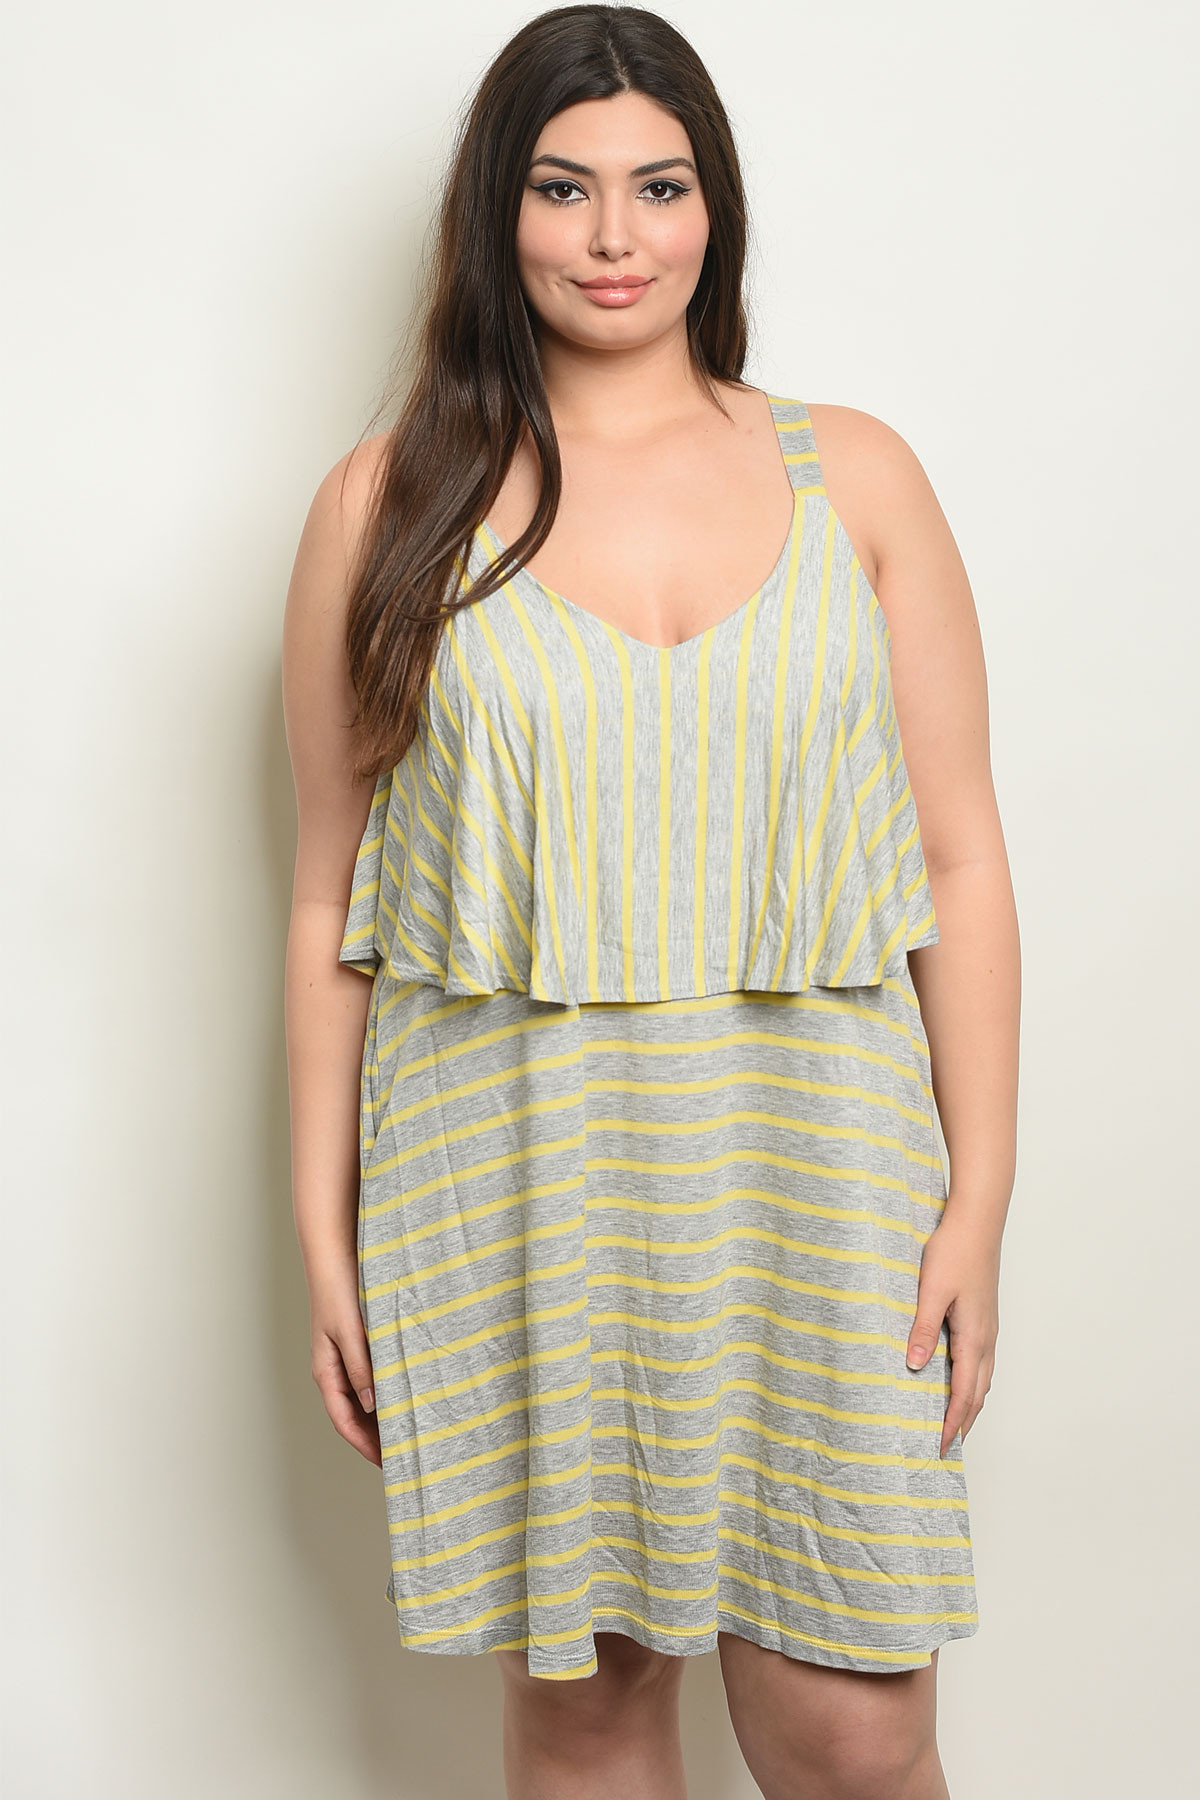 e026be67cf5 C91-A-2-D10555TX GRAY YELLOW STRIPES PLUS SIZE DRESS 2-2-2